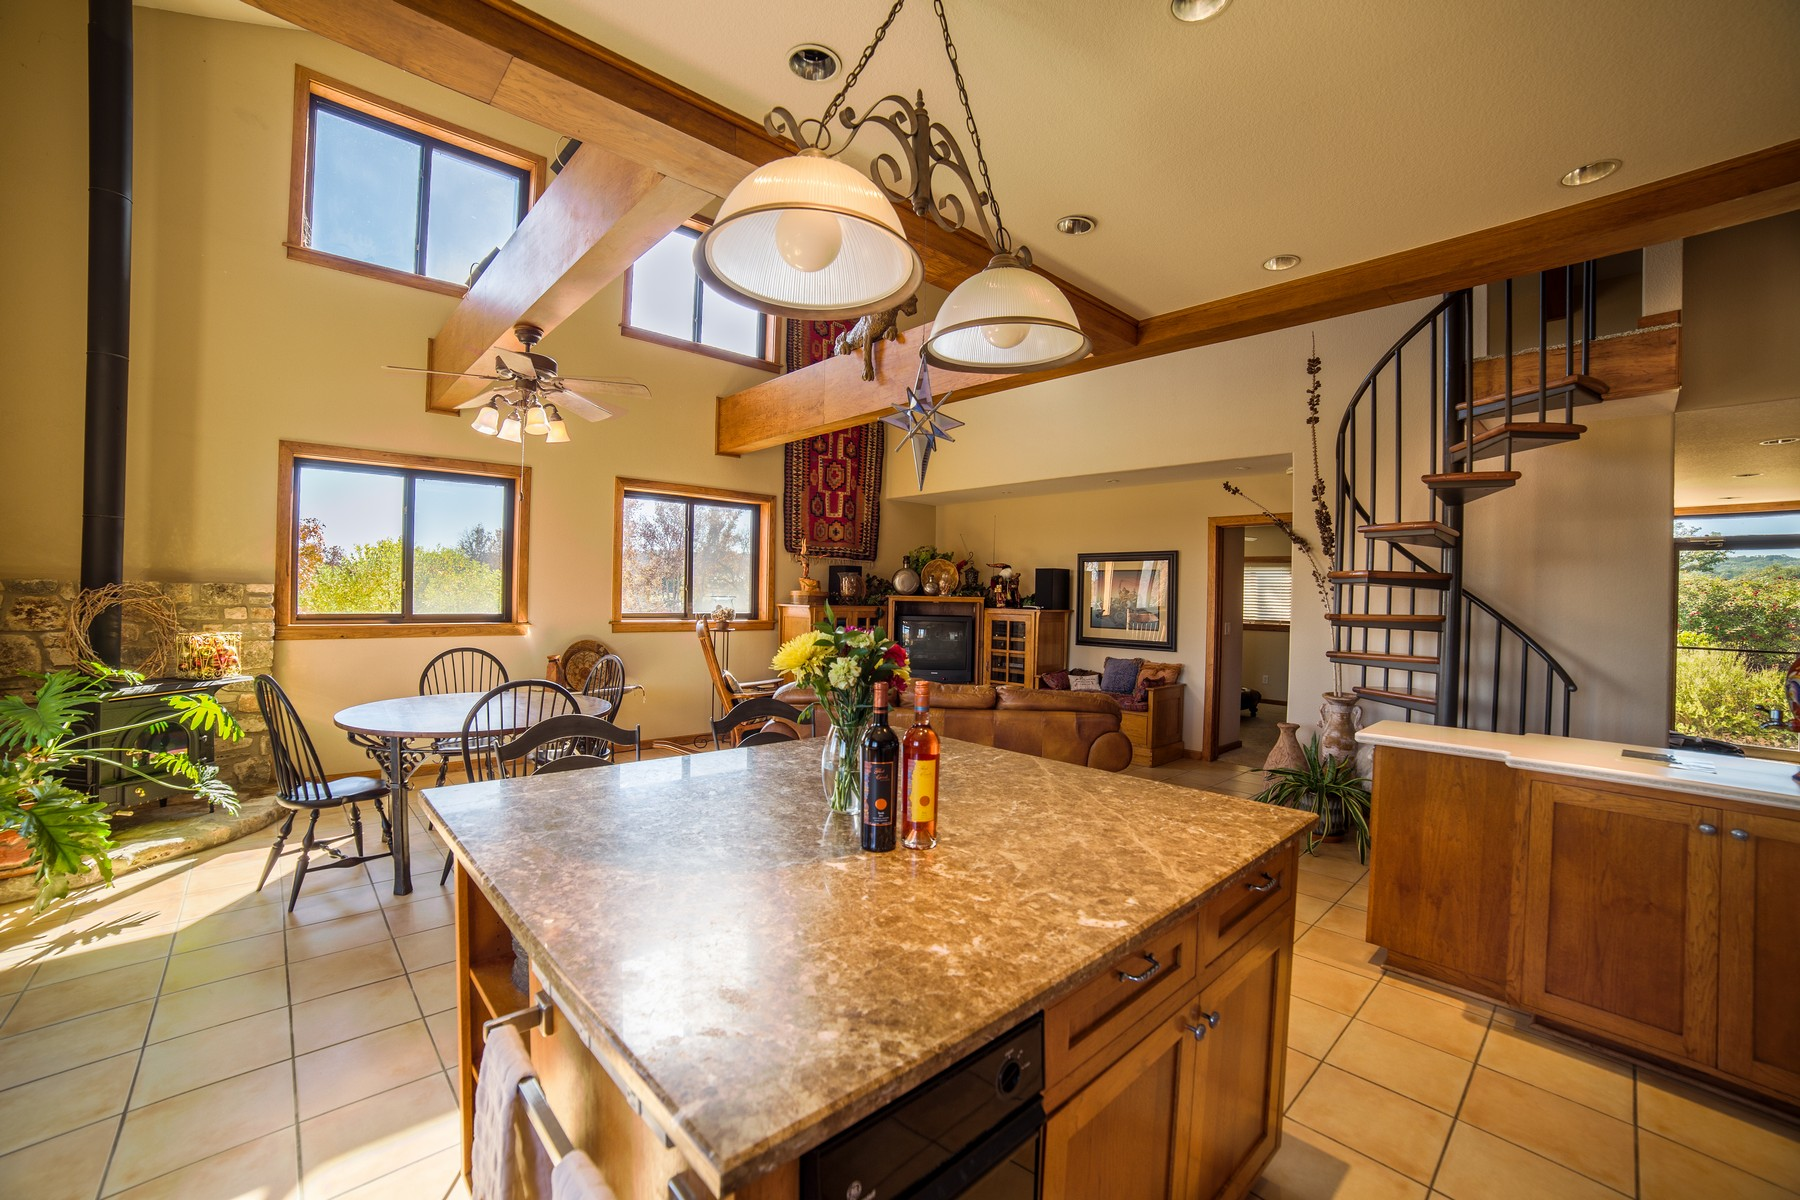 Additional photo for property listing at The Crown Jewel of Texas Wineries 24912 Singleton Bend East Rd Marble Falls, Texas 78654 Estados Unidos